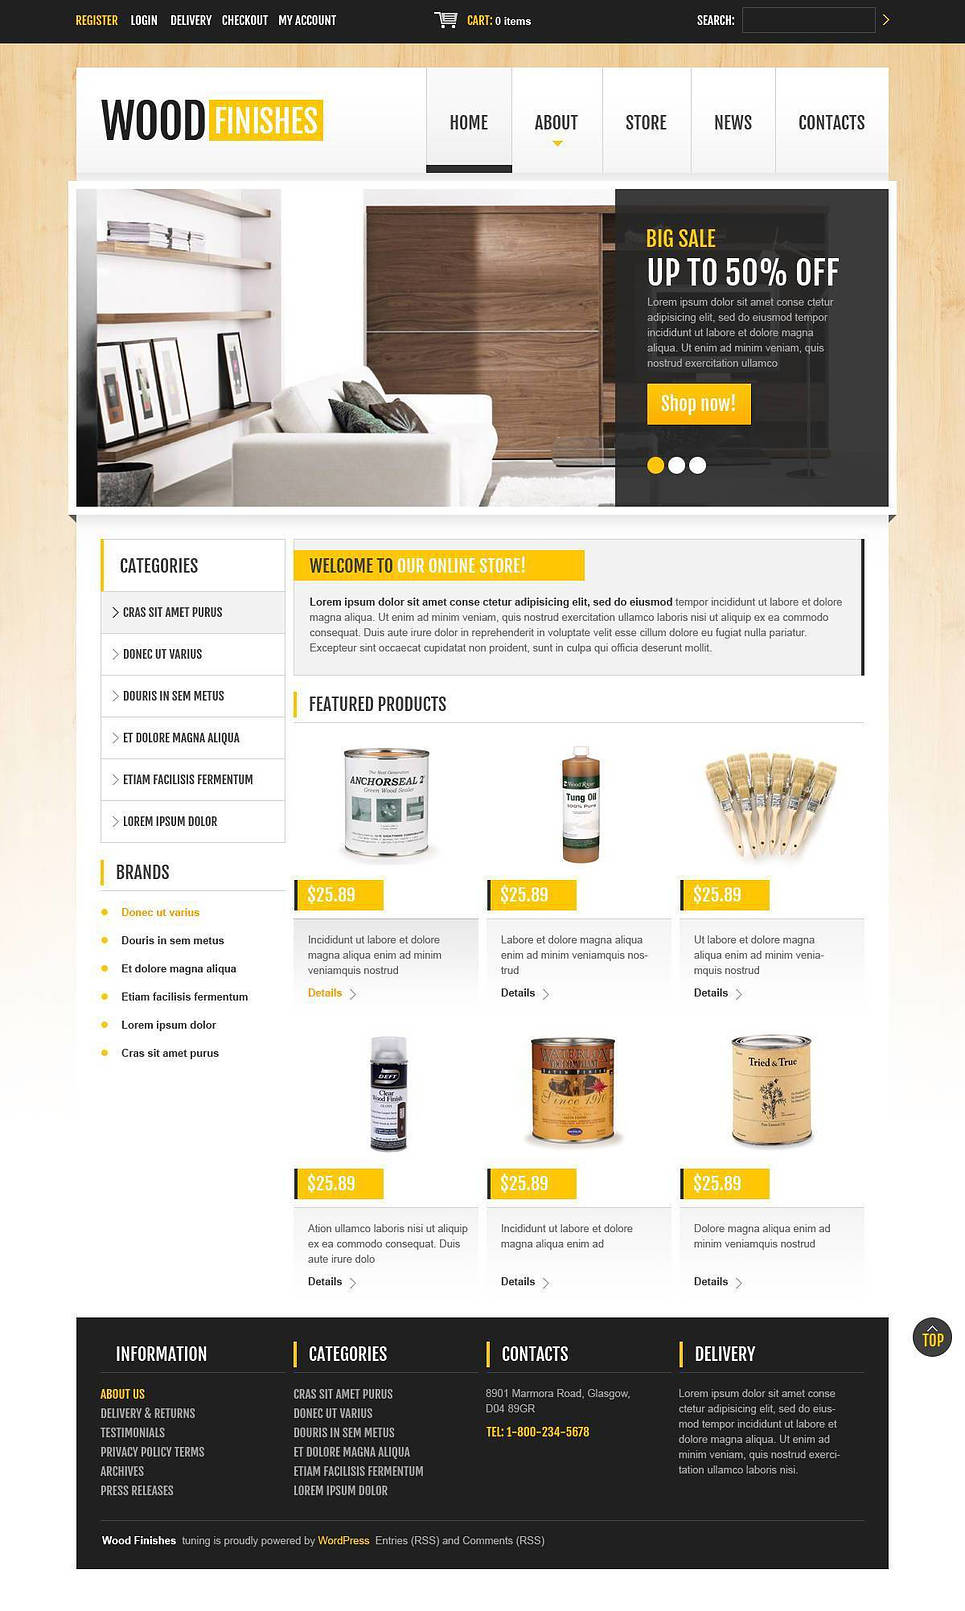 Excellent Responsive Wood Finishes Store JigoShop Theme